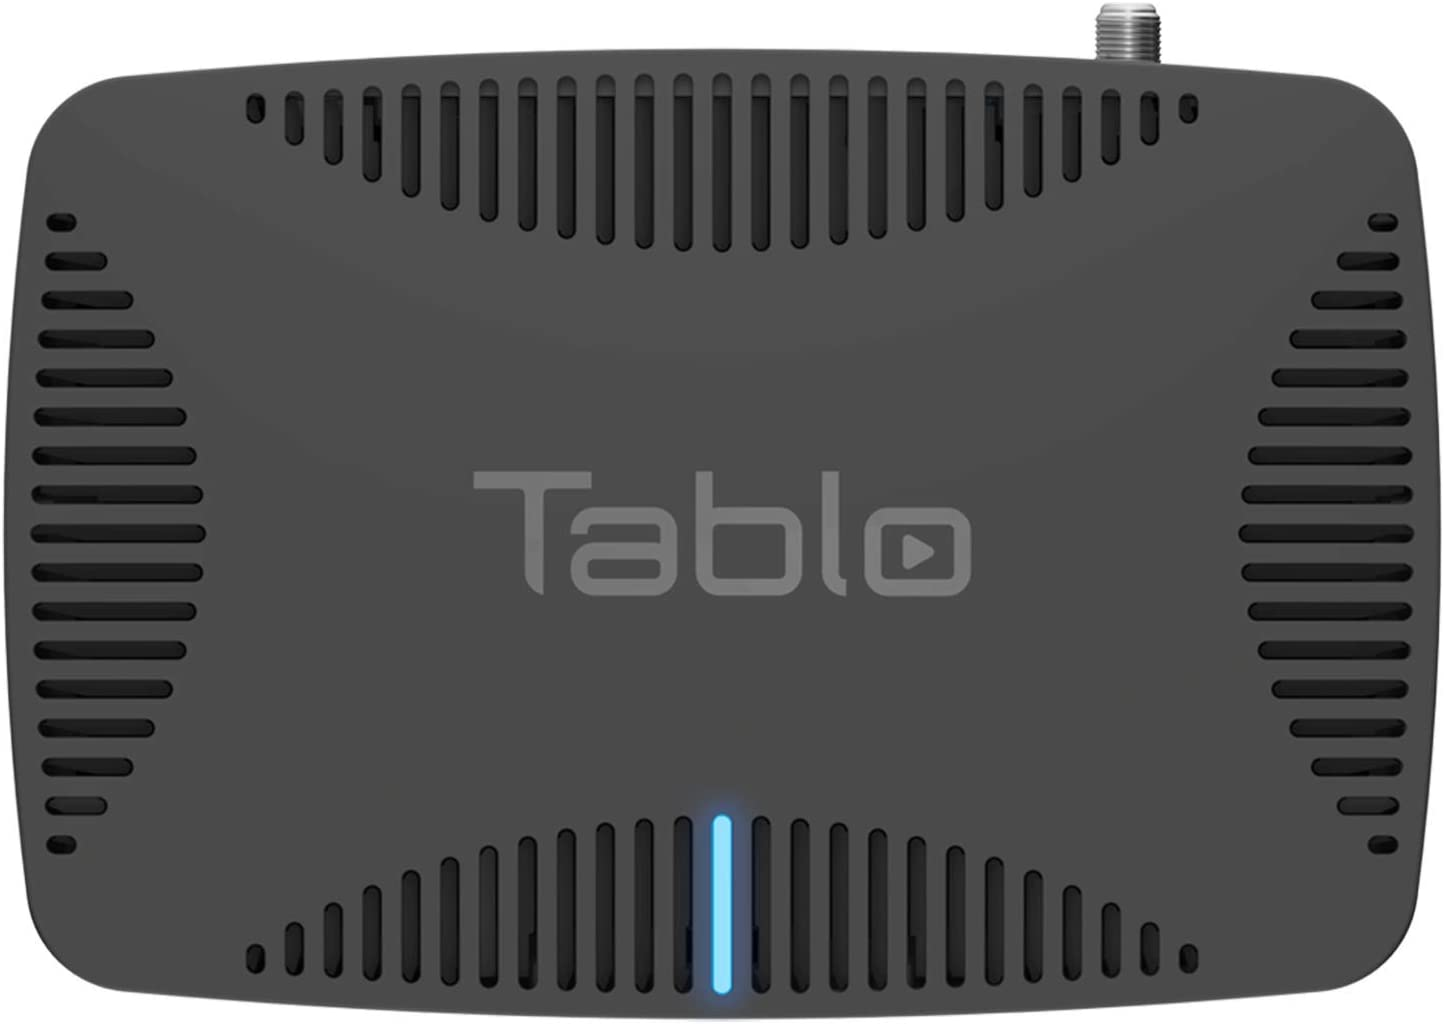 Tablo TQNS4B-01-CN Quad Over-The-air [OTA] Digital Video Recorder [DVR] for Cord Cutters - with WiFi, Live TV Streaming, & Automatic Commercial Skip, Black